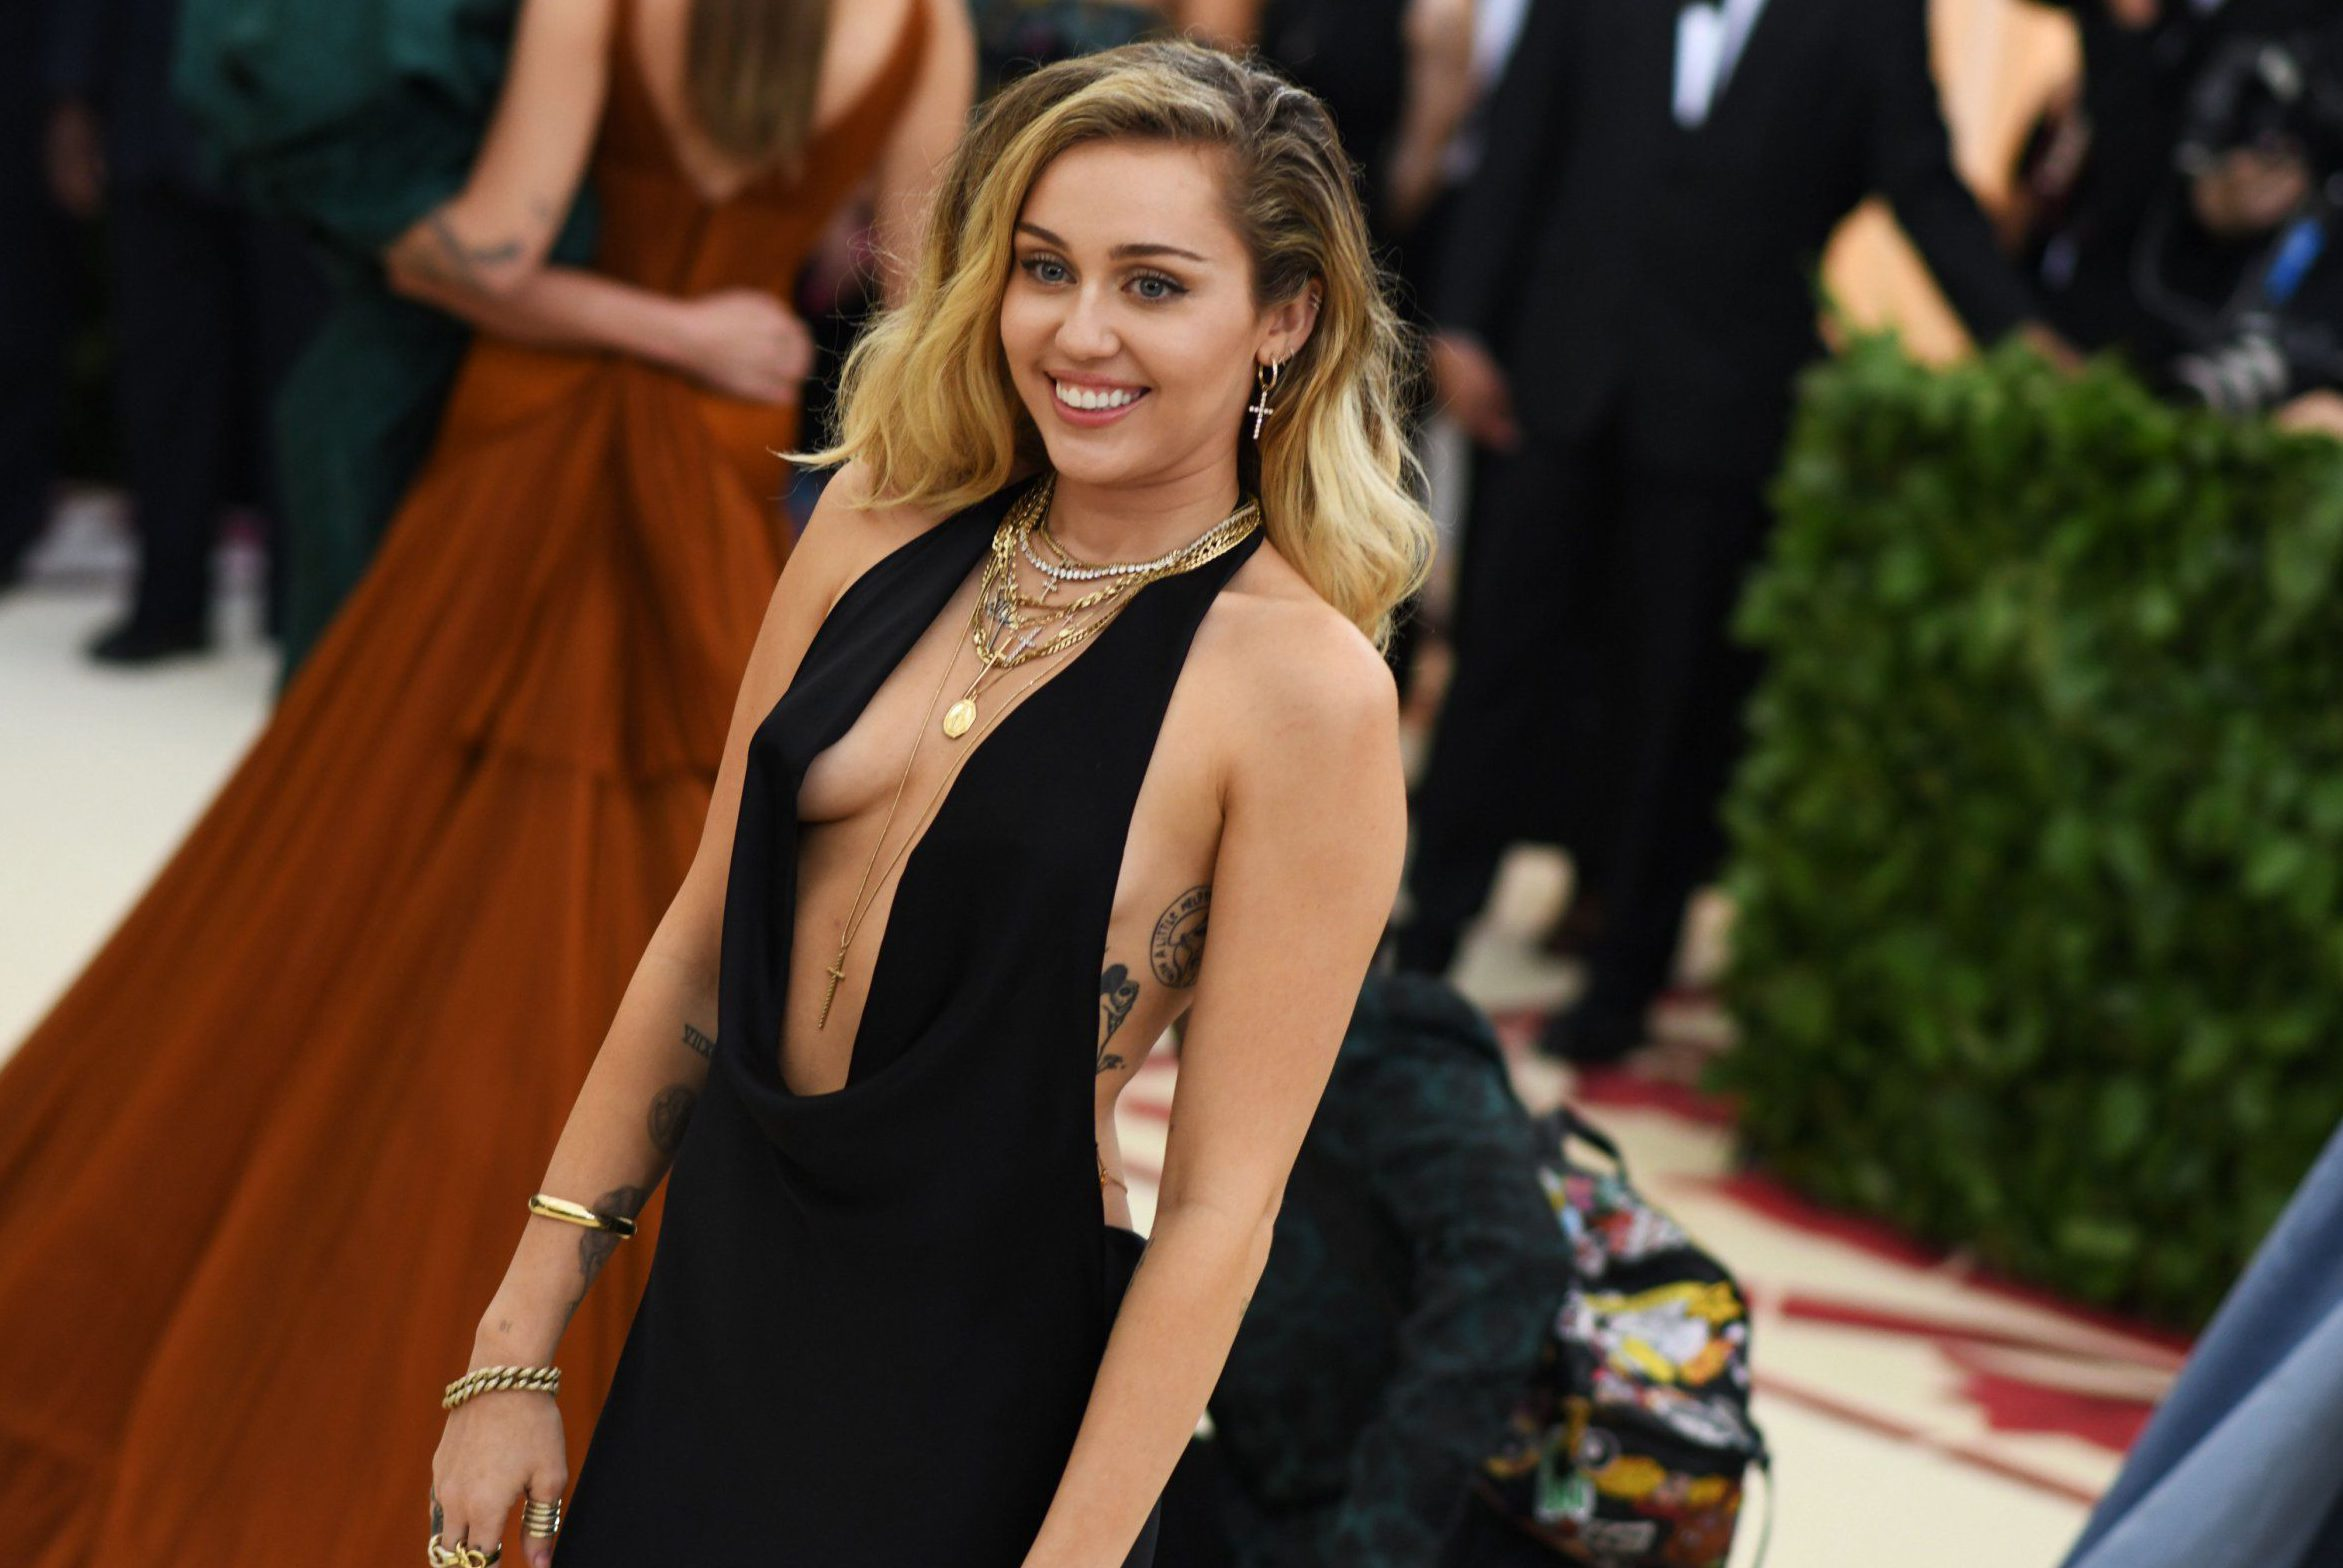 Mandatory Credit: Photo by Nina Westervelt/BEI/REX/Shutterstock (9662984dk) Miley Cyrus The Metropolitan Museum of Art's Costume Institute Benefit celebrating the opening of Heavenly Bodies: Fashion and the Catholic Imagination, Arrivals, New York, USA - 07 May 2018